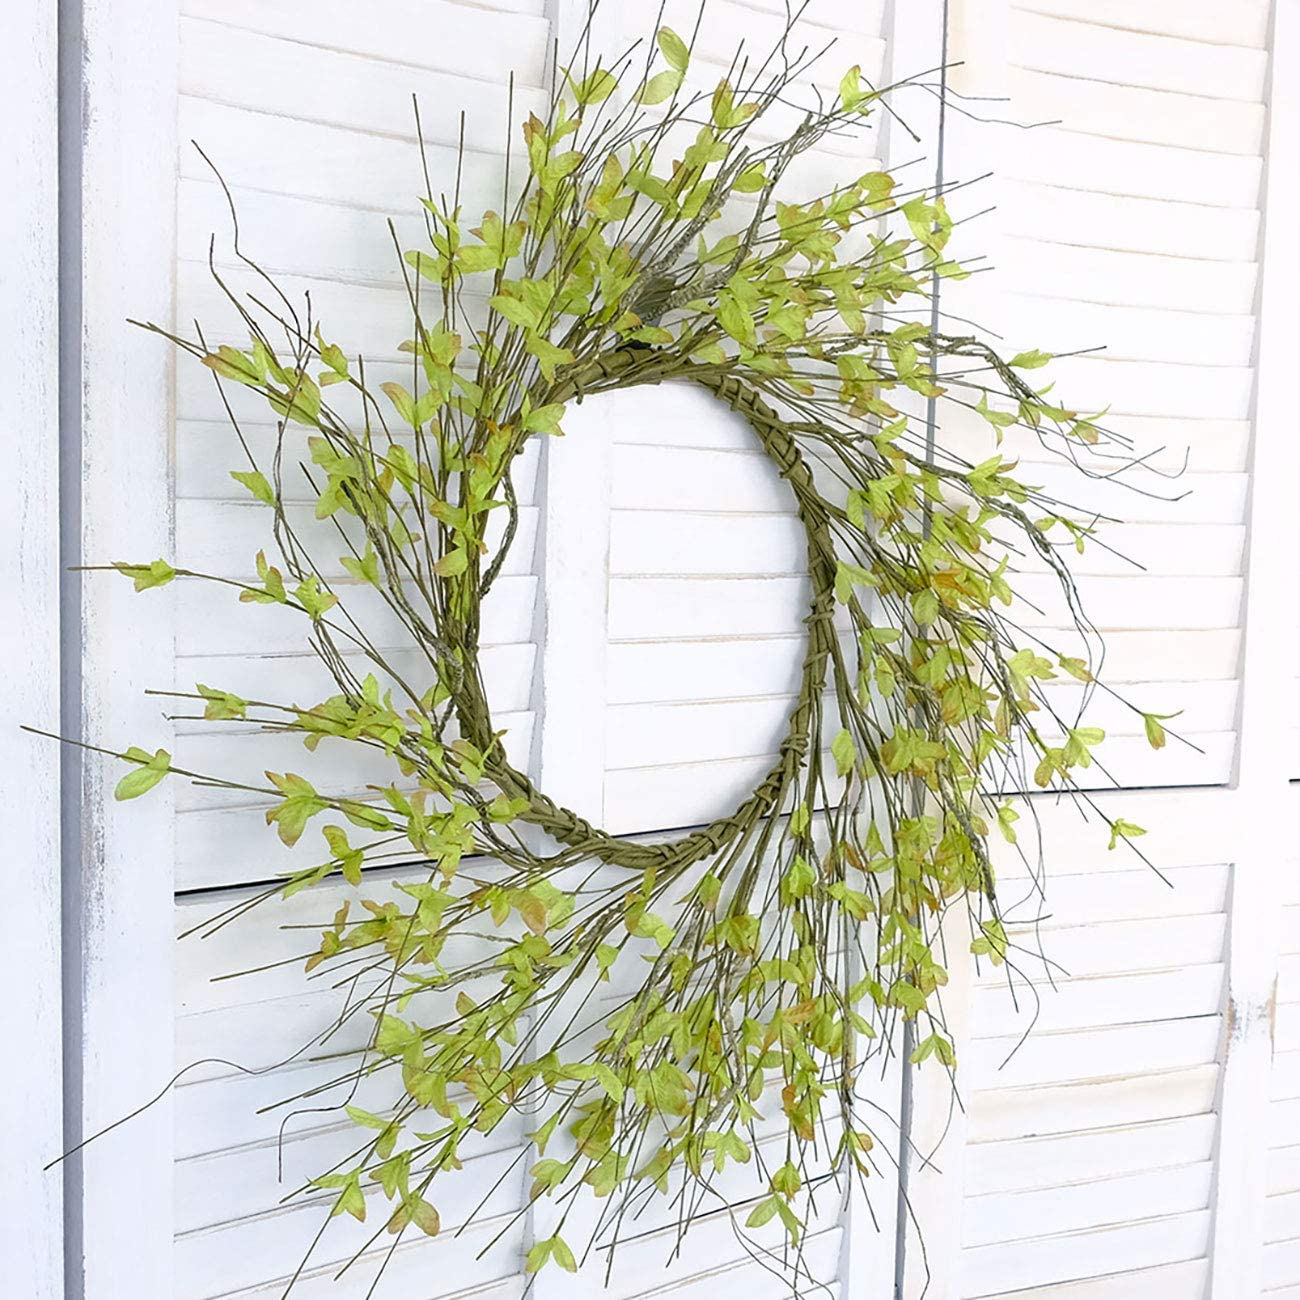 Bibelot 20 inches Handmade Spring Wreath,Rustic Floral Branch Wreath,Farmhouse Wreath for Front Door,Home Decorations (20in)